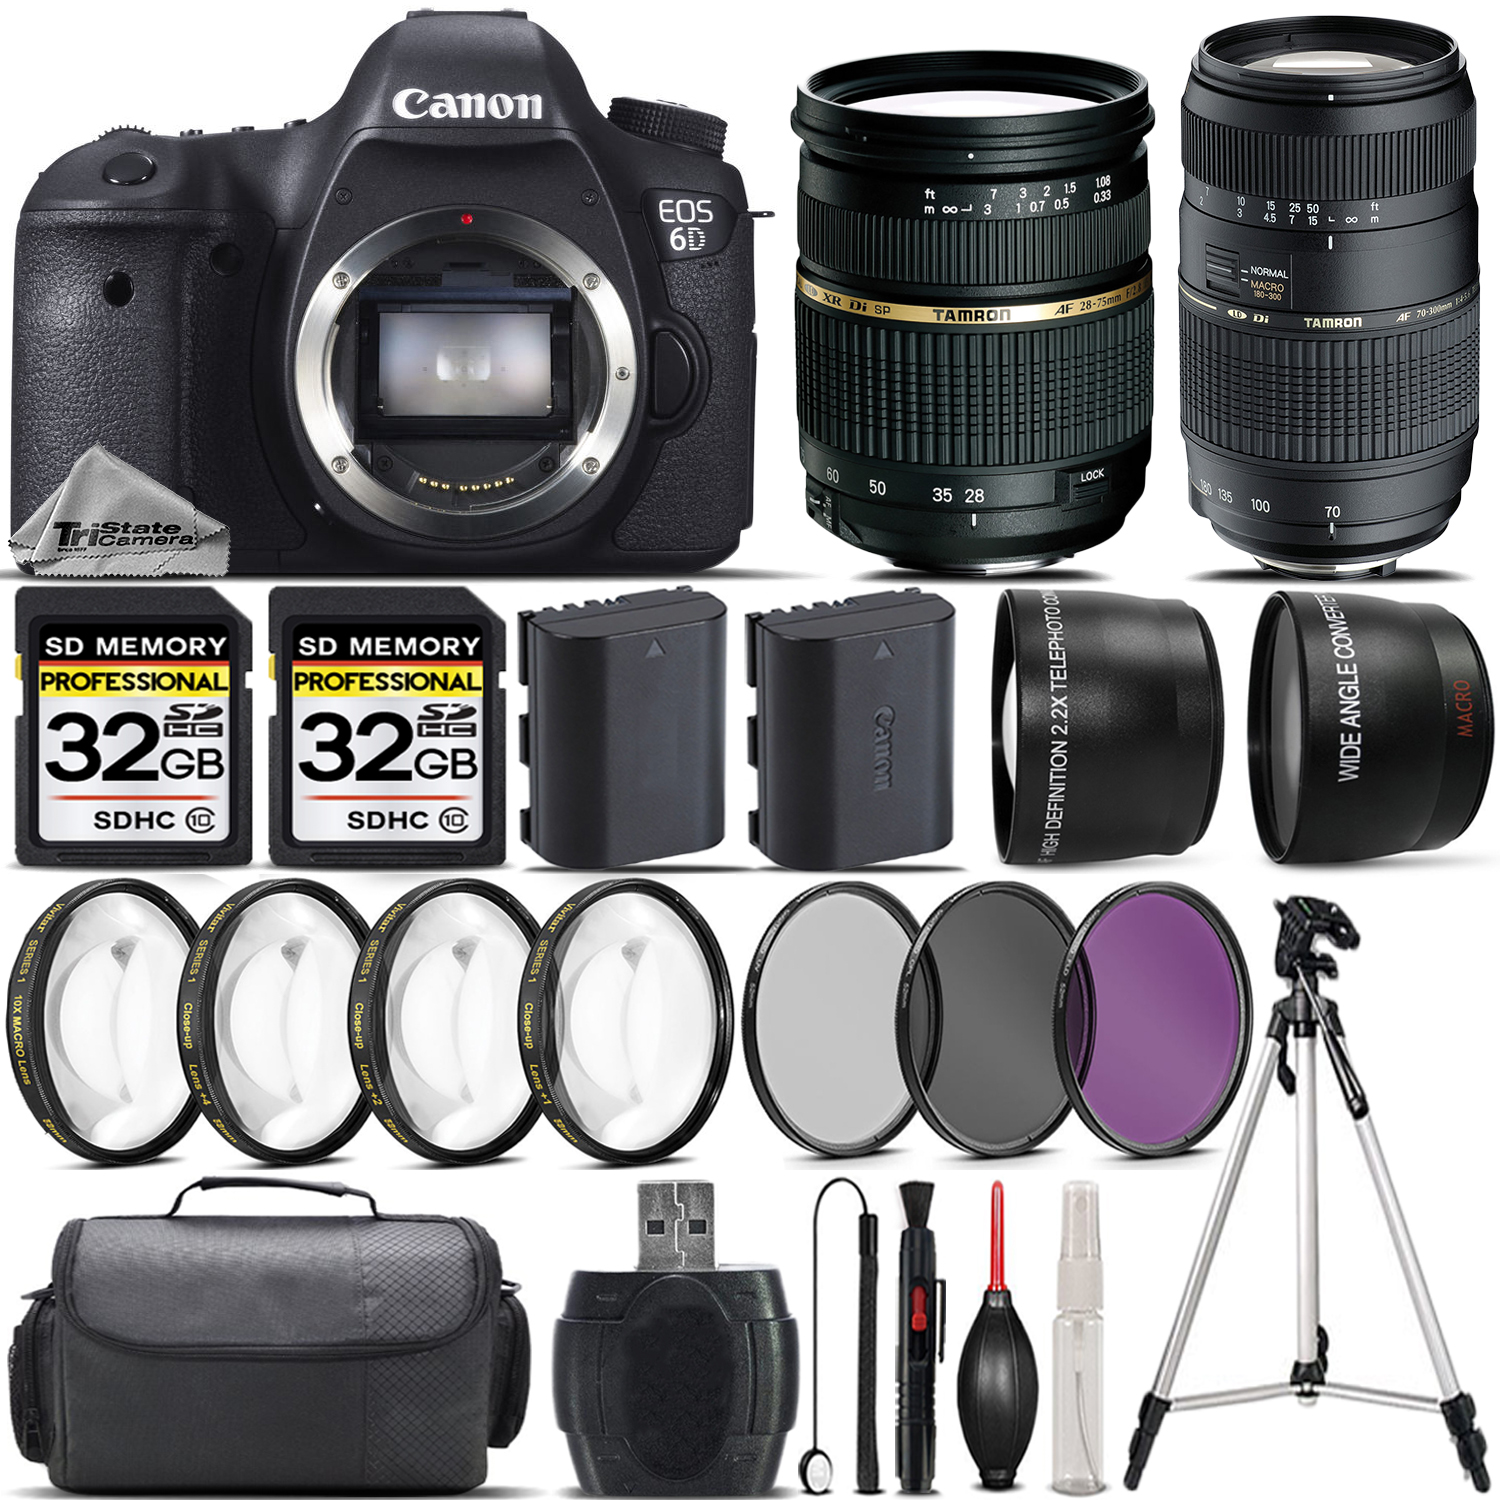 EOS 6D DSLR Camera + 28-75mm XR Di Lens + 70-300mm Lens + 4PC Macro Kit *FREE SHIPPING*